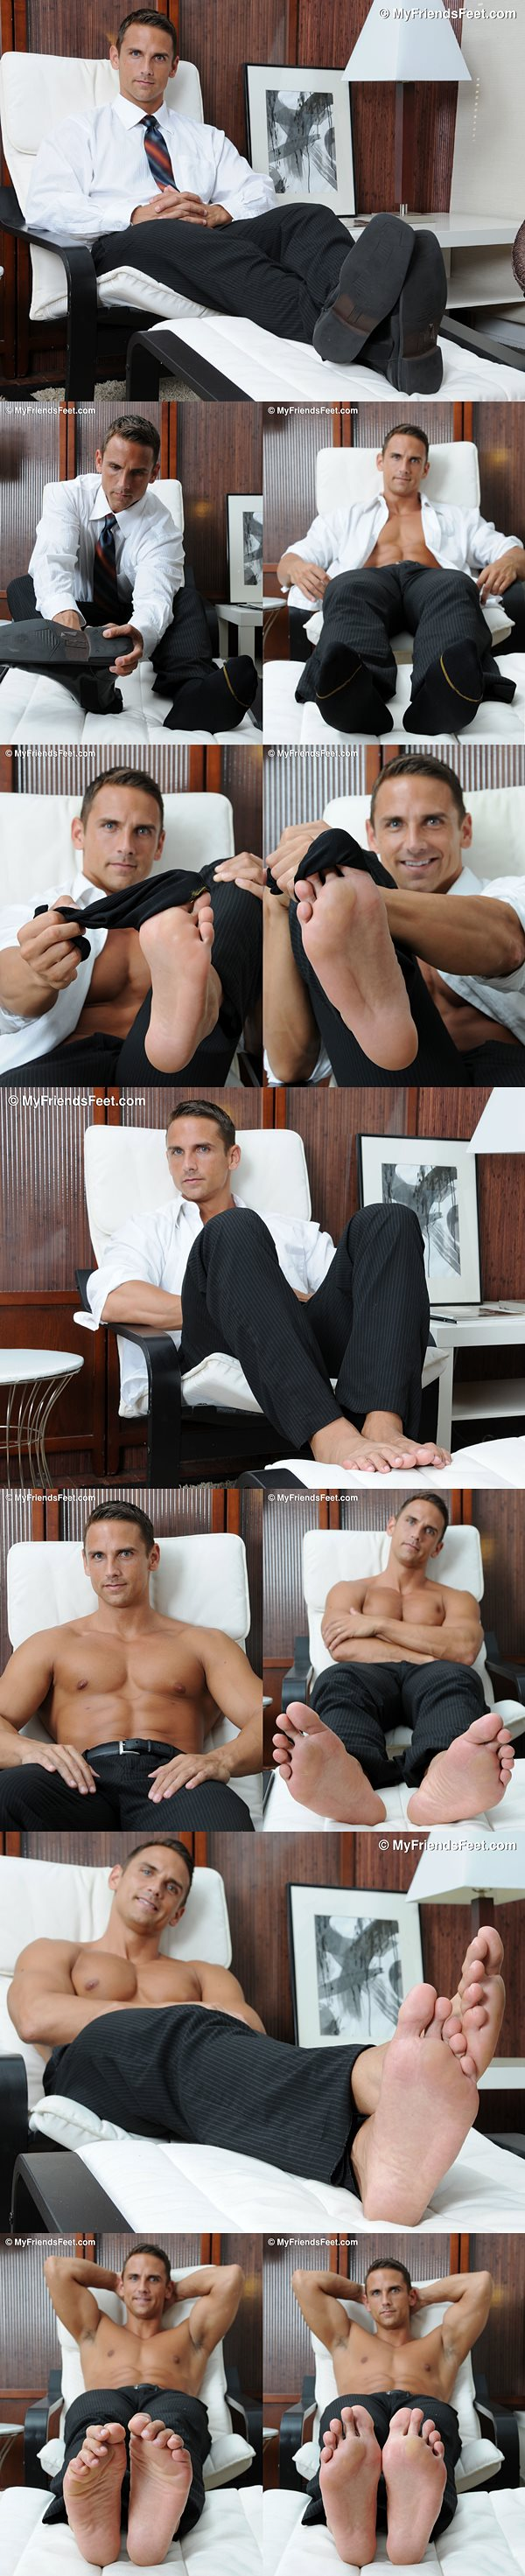 Handsome businessman Cody's size 12 feet and dress socks at Myfriendsfeet